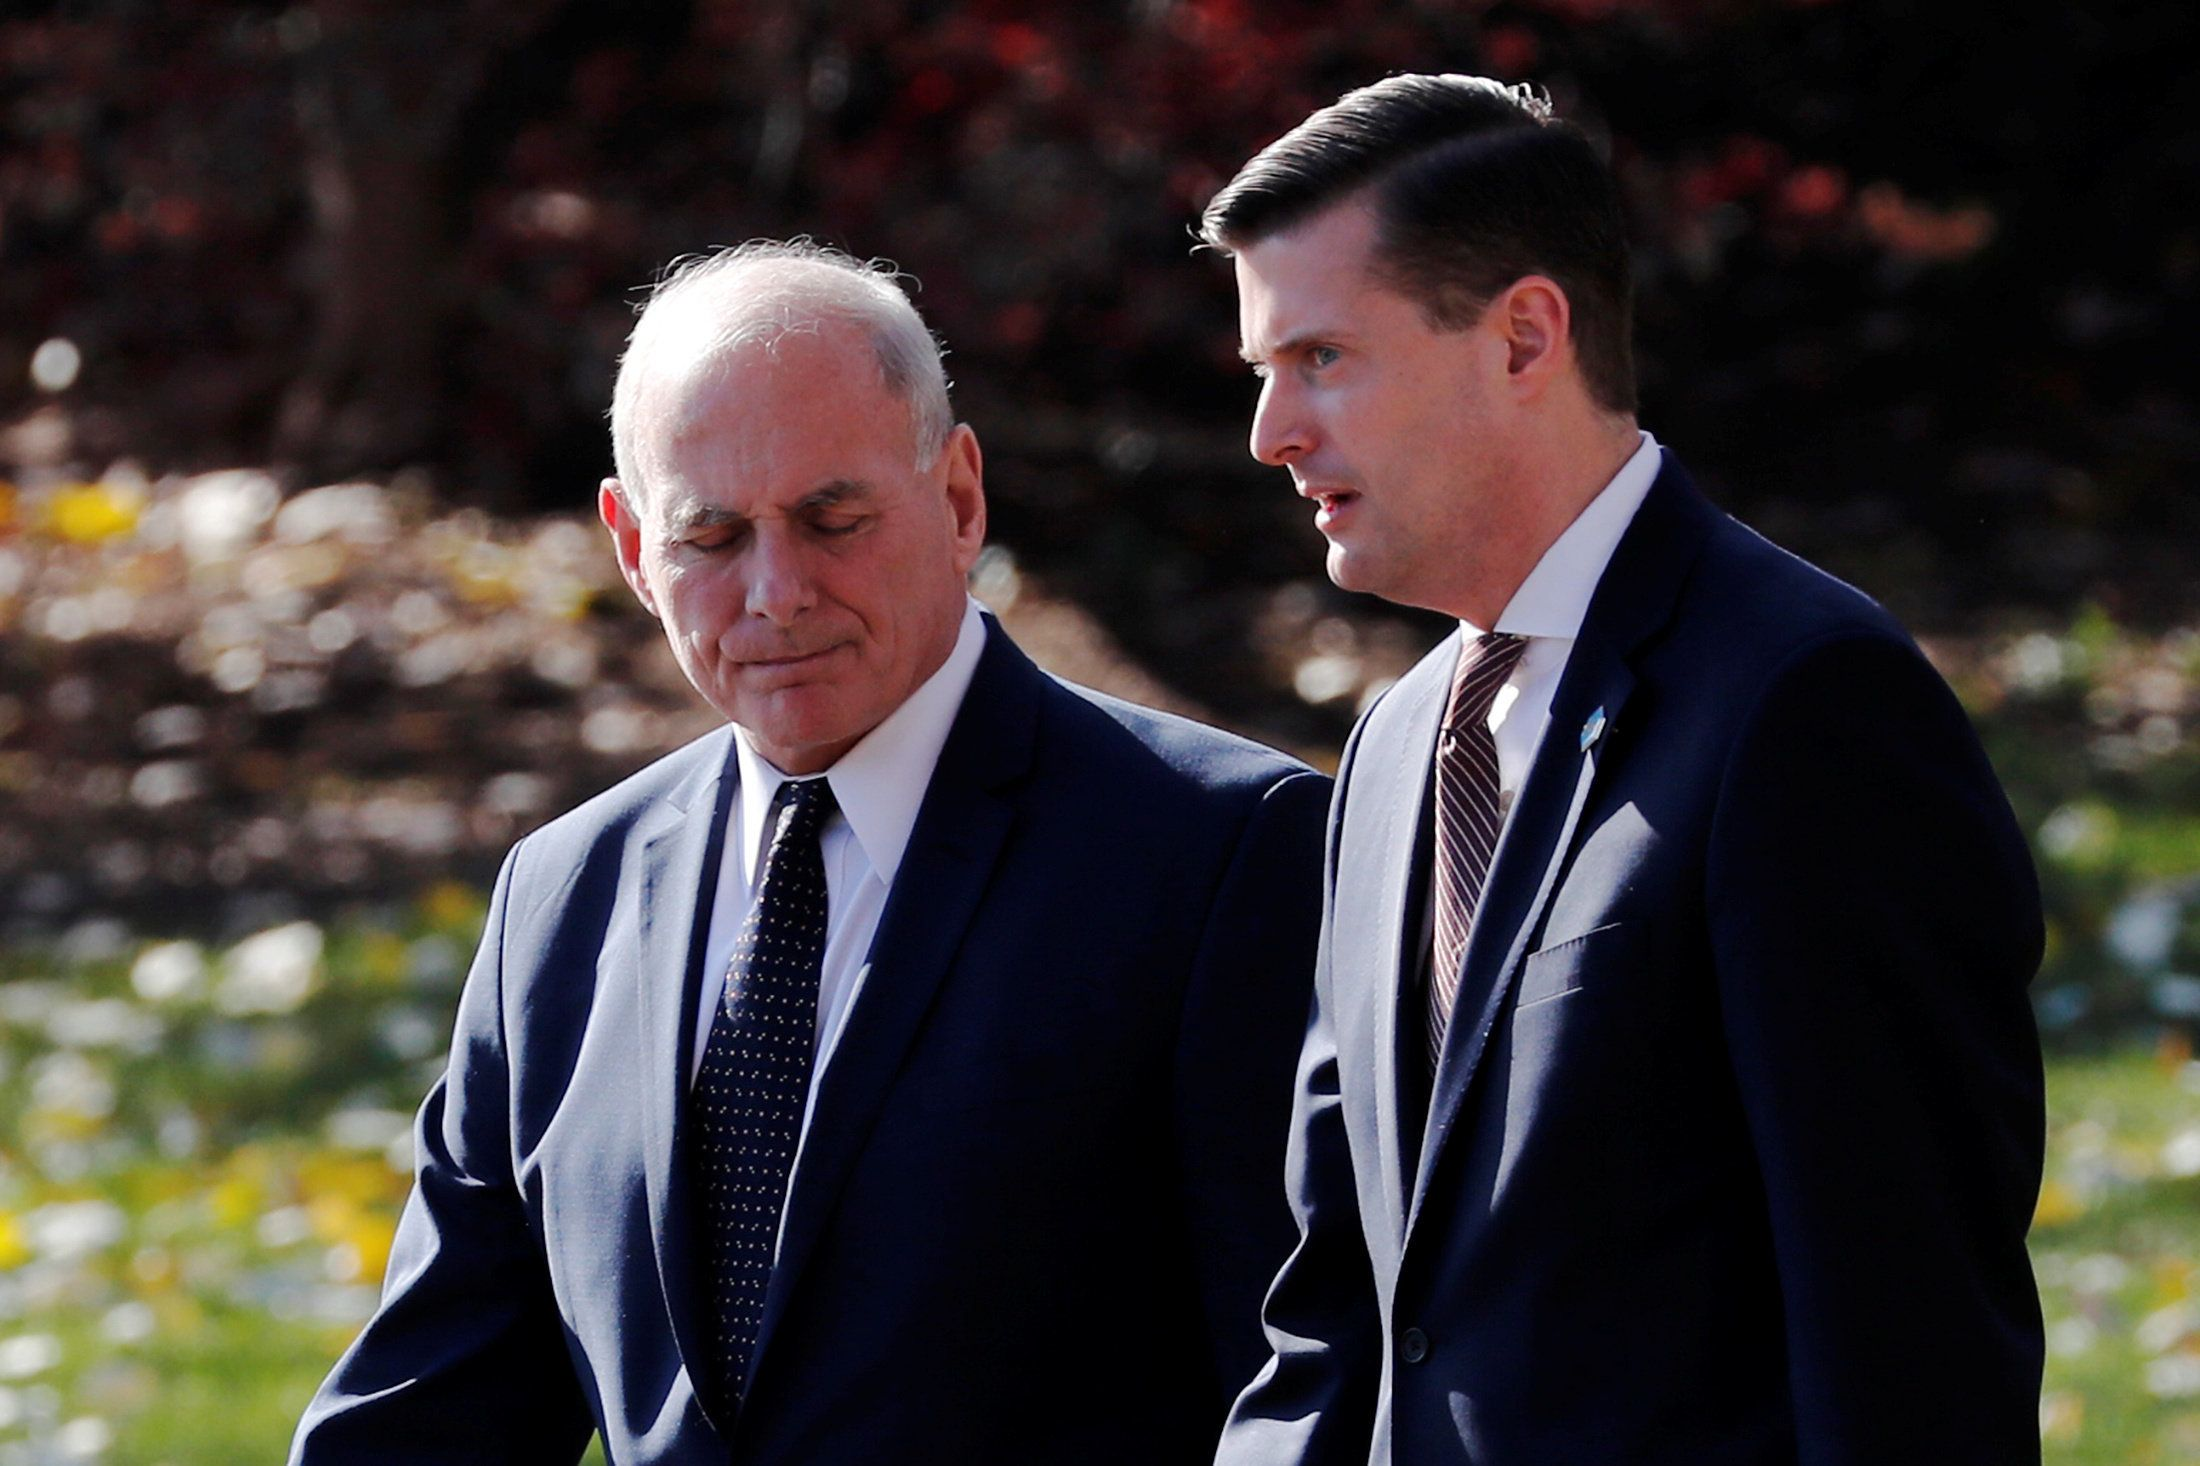 White House chief of staff John Kelly walks with White House staff secretary Rob Porter on Nov. 29,